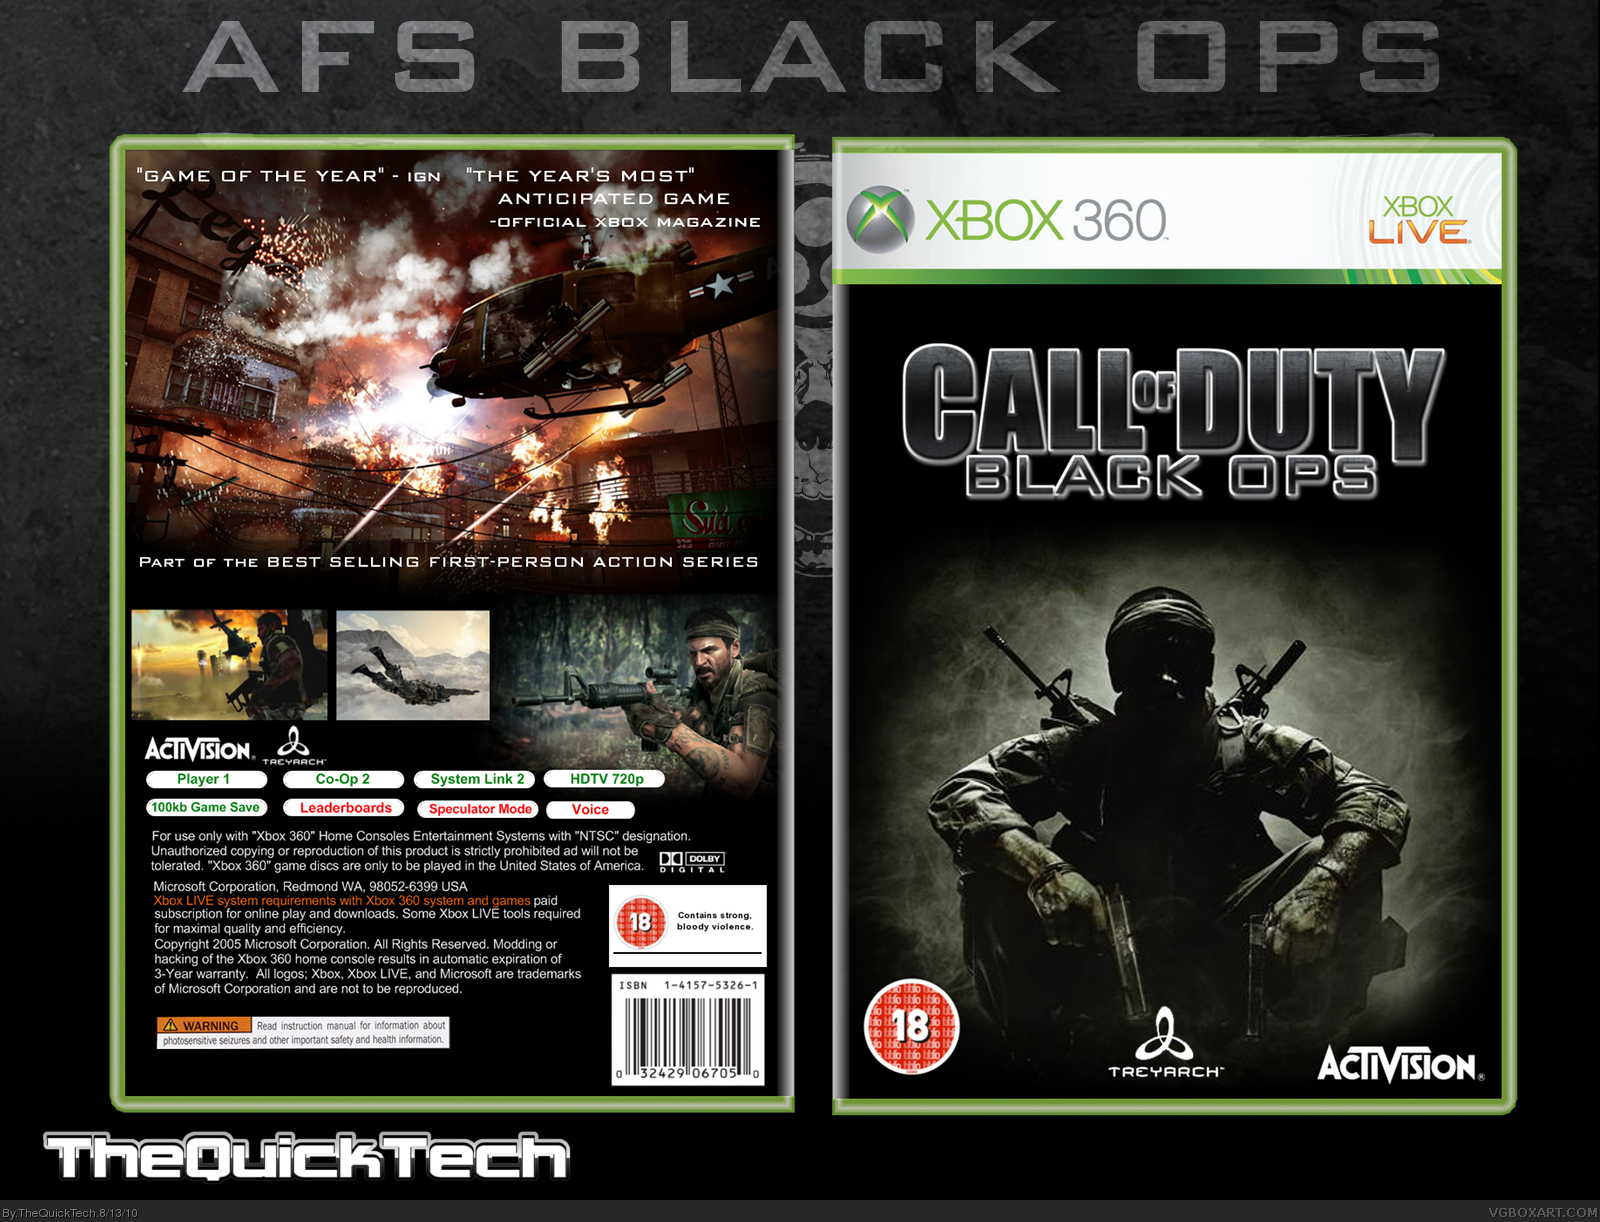 Call of Duty: Black Ops box cover